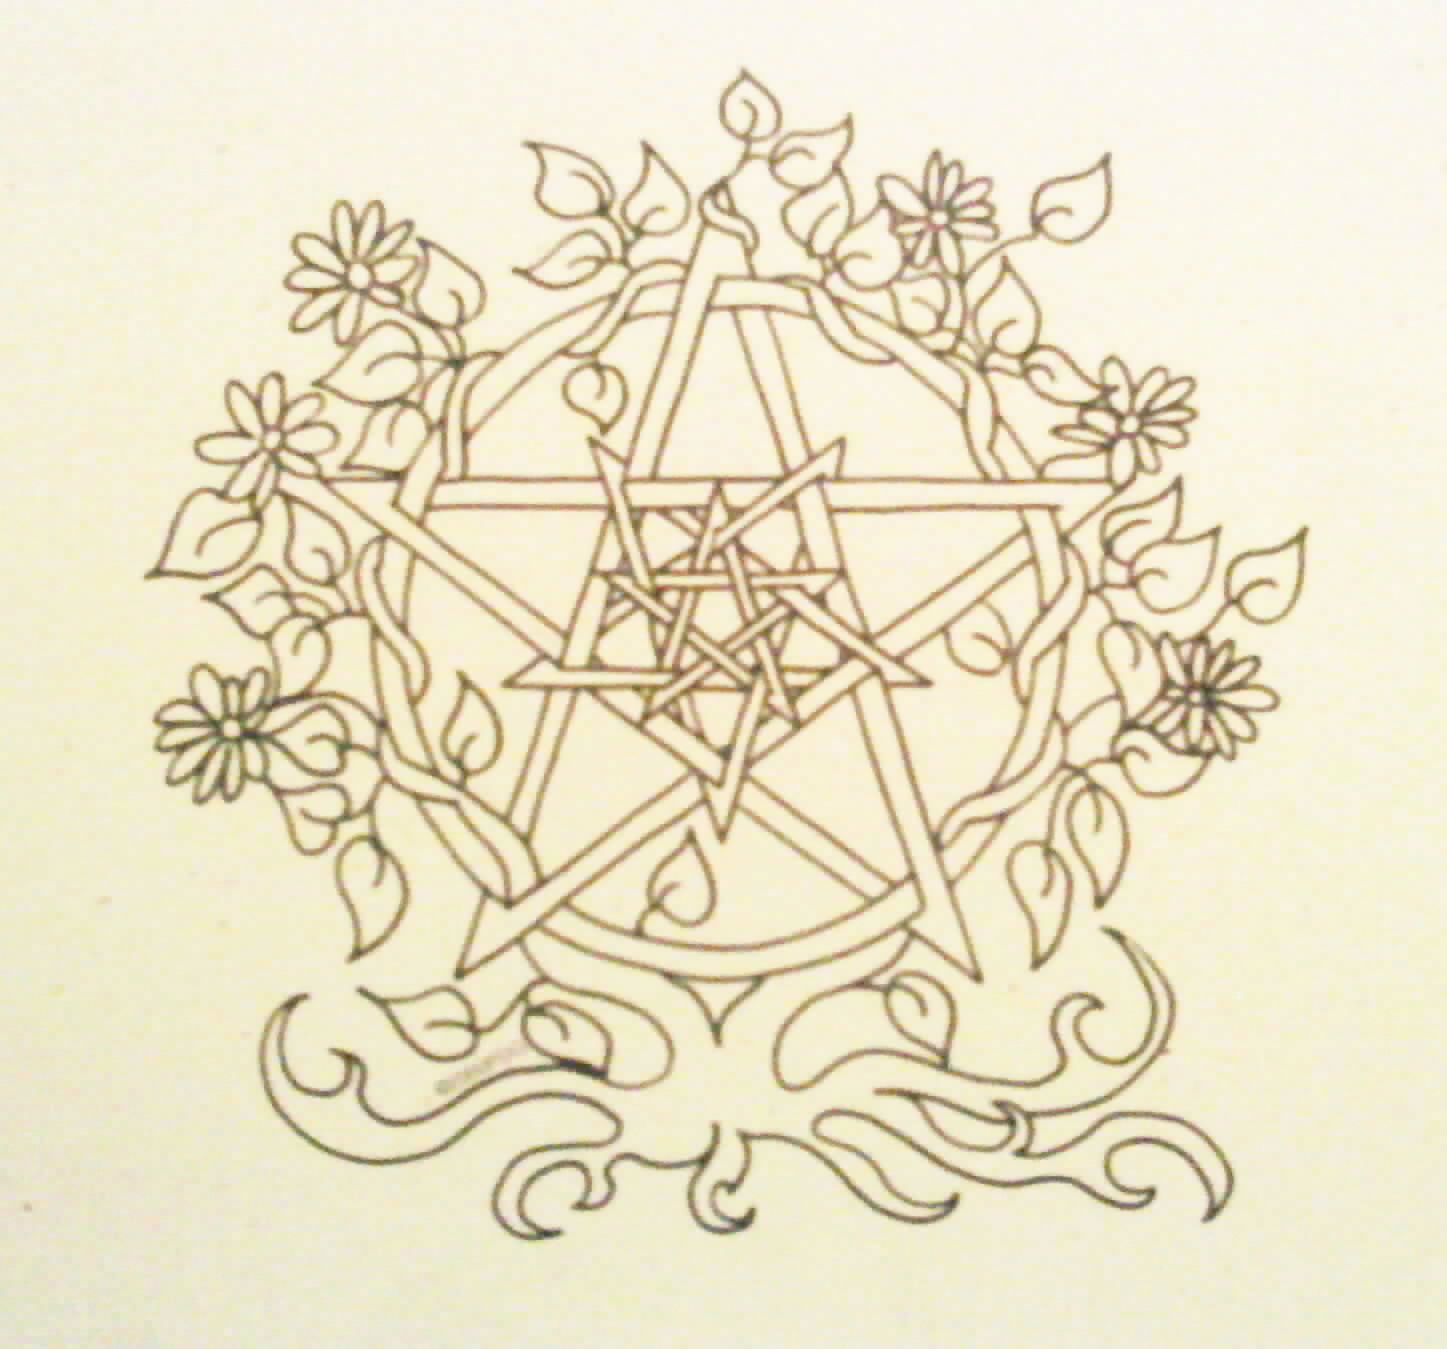 Wiccan Drawing at GetDrawings.com | Free for personal use Wiccan ...